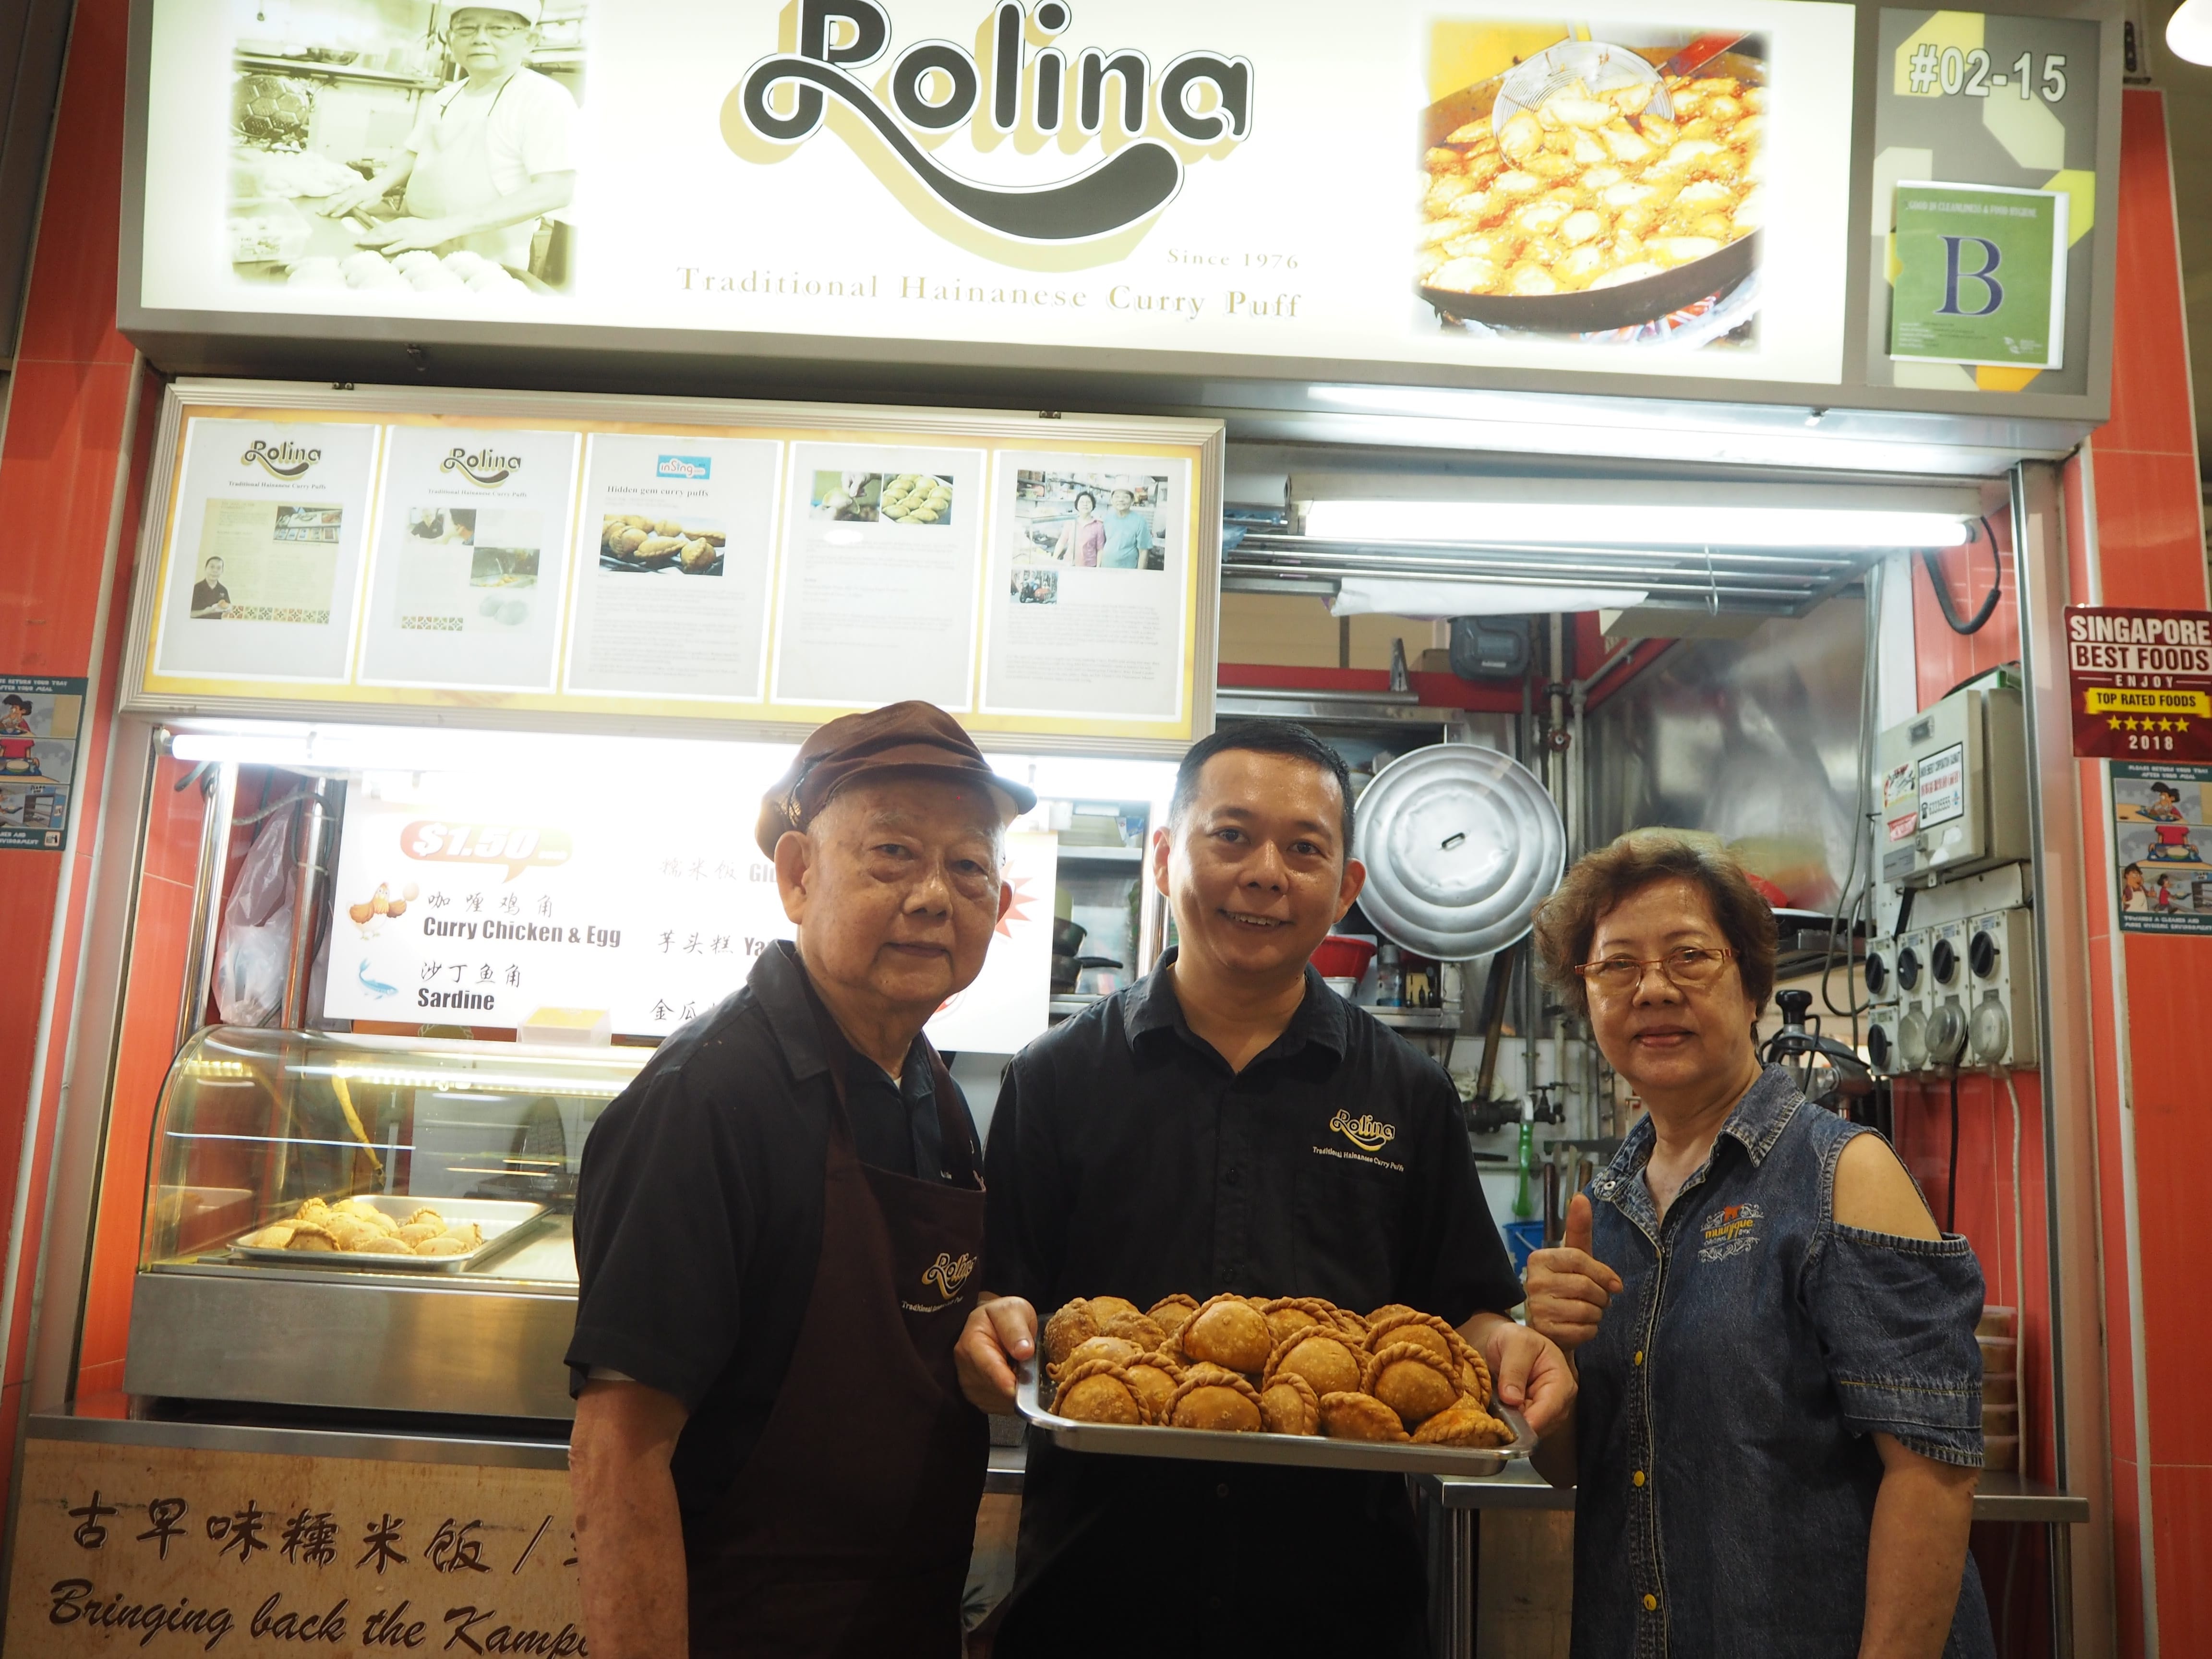 The Tham family has been running Rolina Traditional Hainanese Curry Puff for more than 50 years. (Credit: Kenneth Goh)